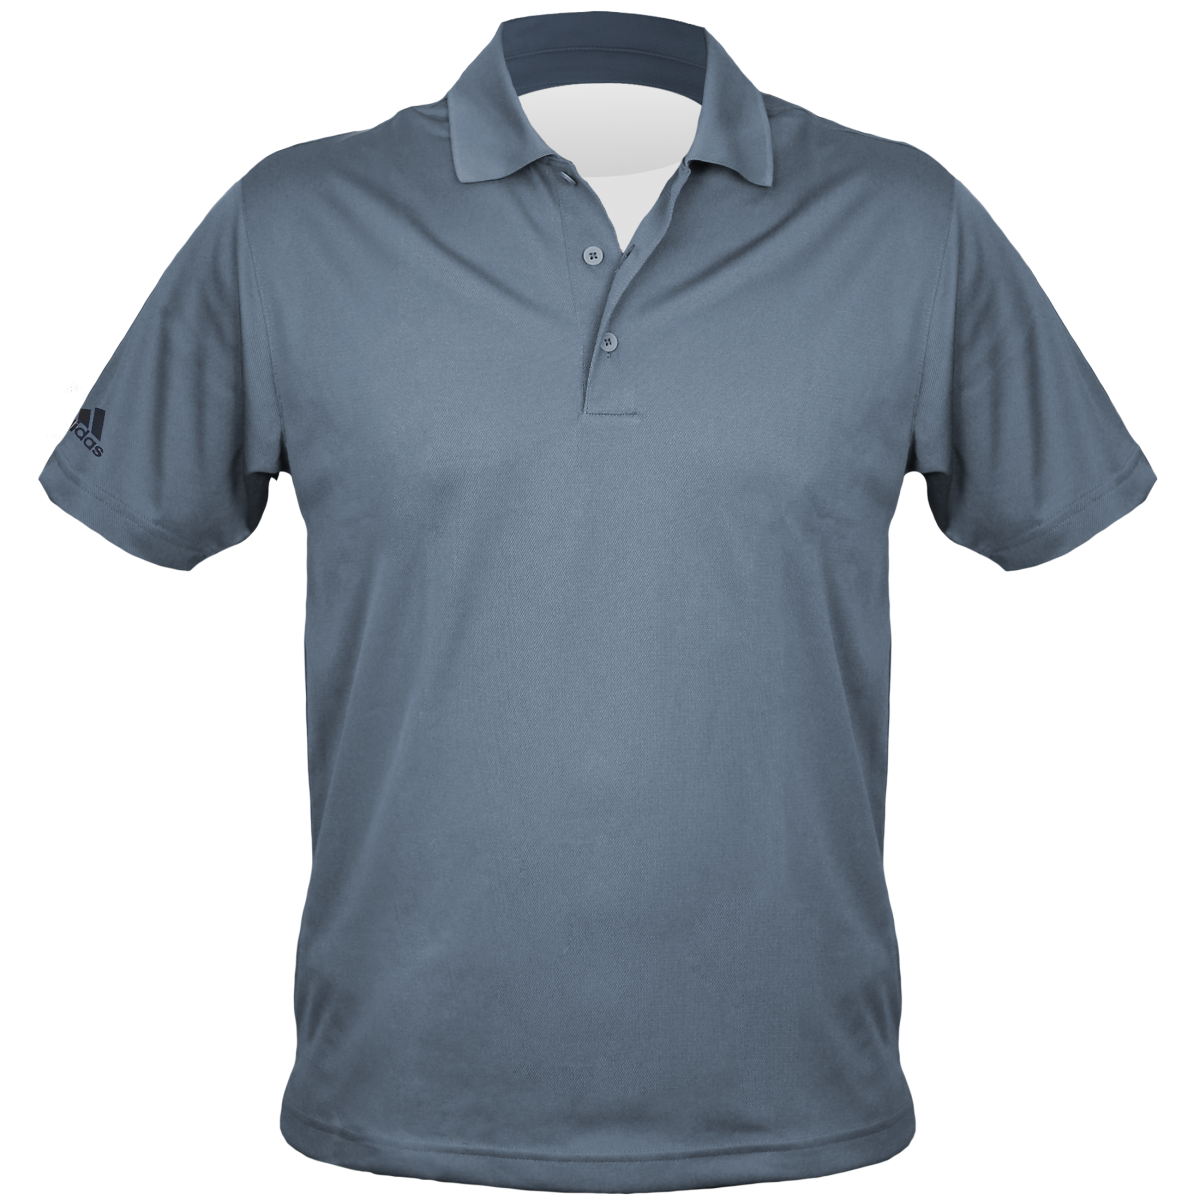 Embroidered Adidas Men's Polo-Charocal-S